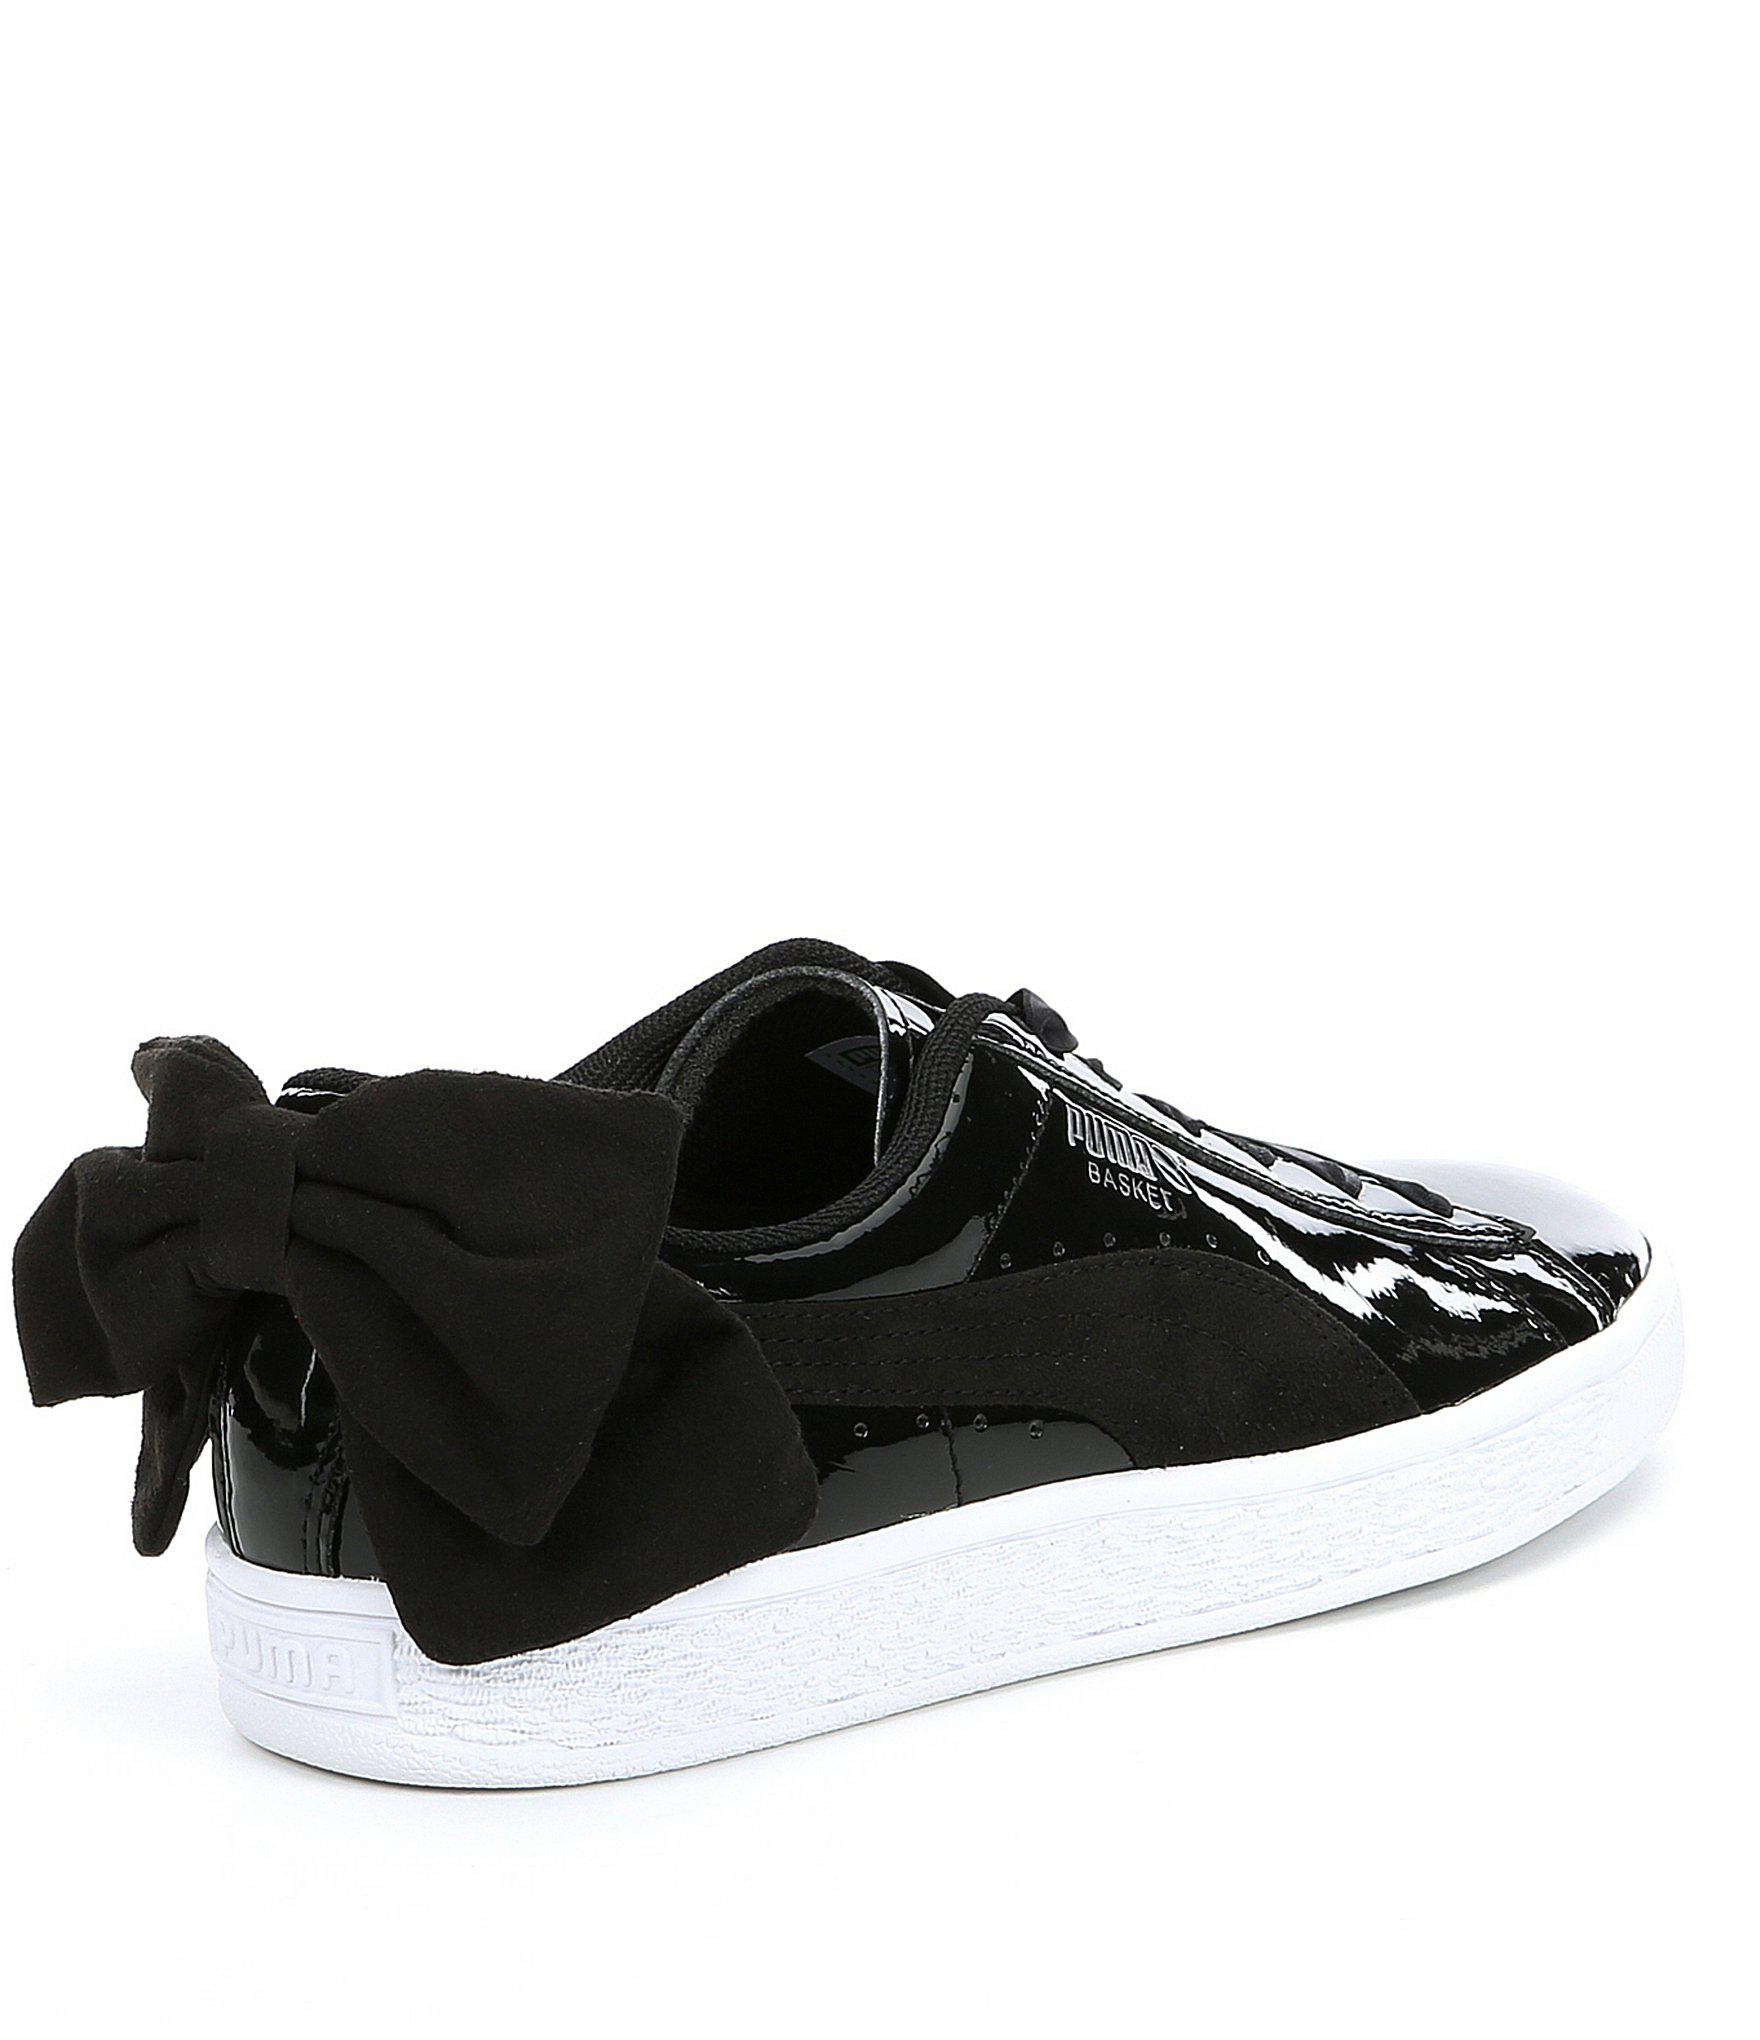 big sale 1258b 1f0d1 Women's Black Basket Bow Patent Leather Sb Sneakers